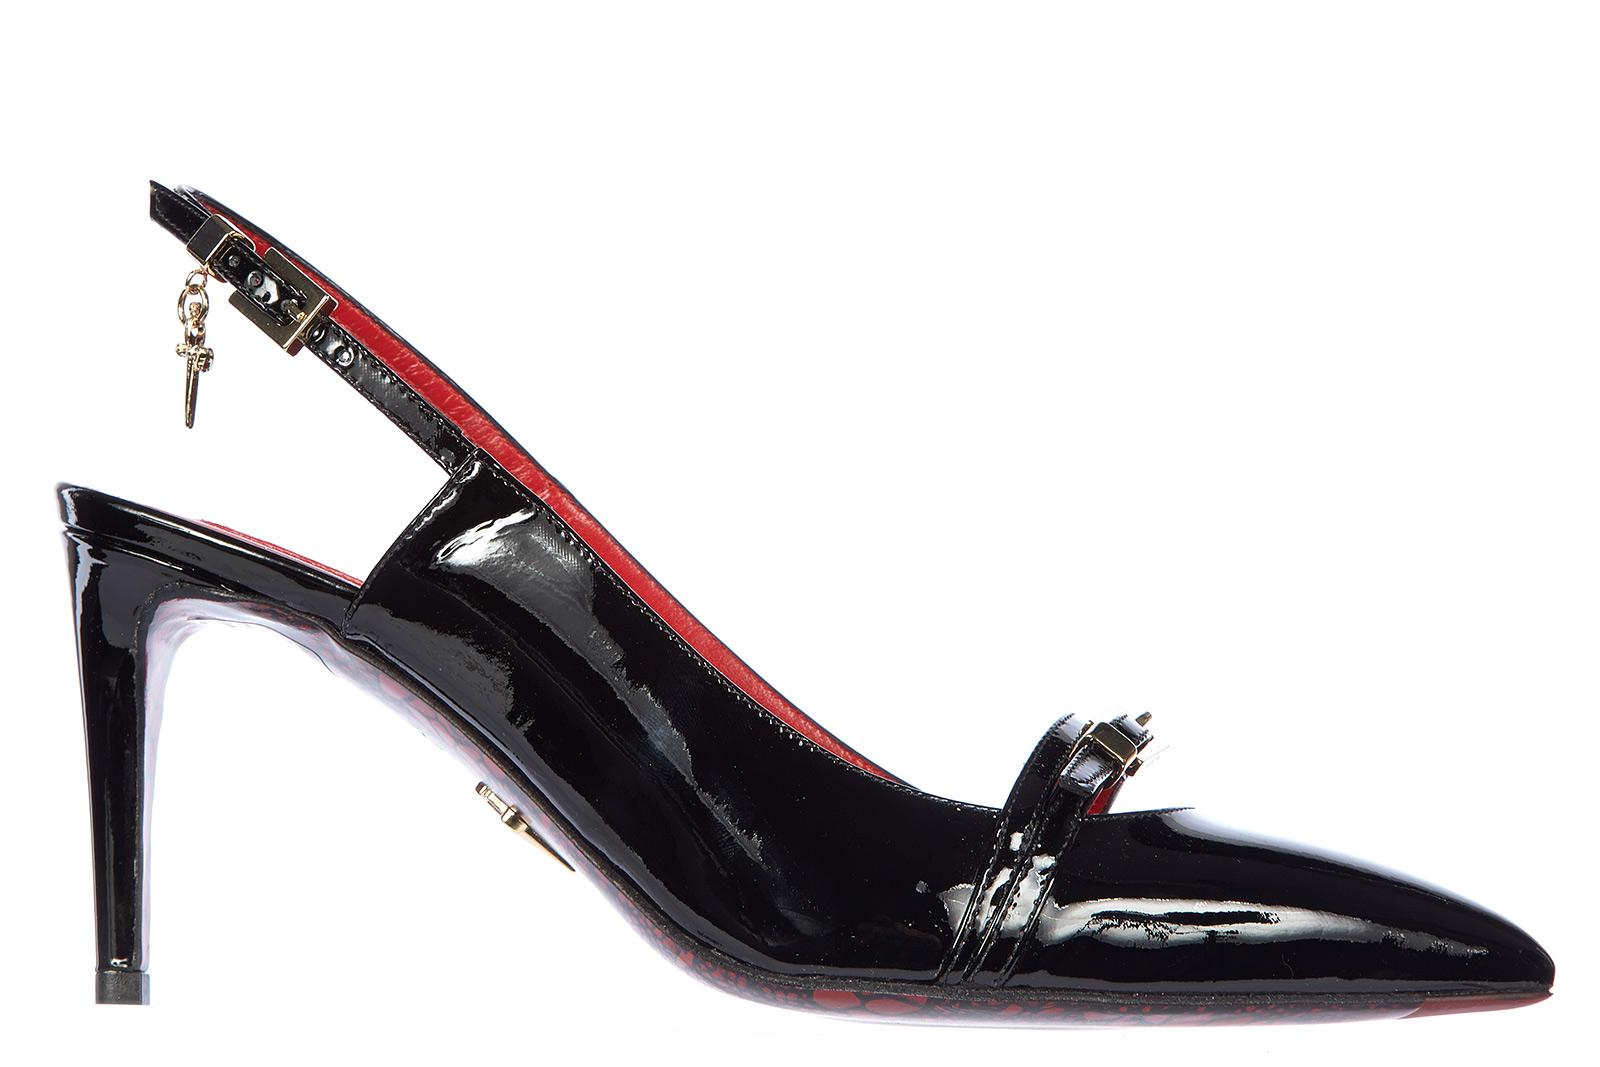 a05e42fbde06 Cesare Paciotti Women s Leather Pumps Court Shoes High Heel Vernice Luce In  Black